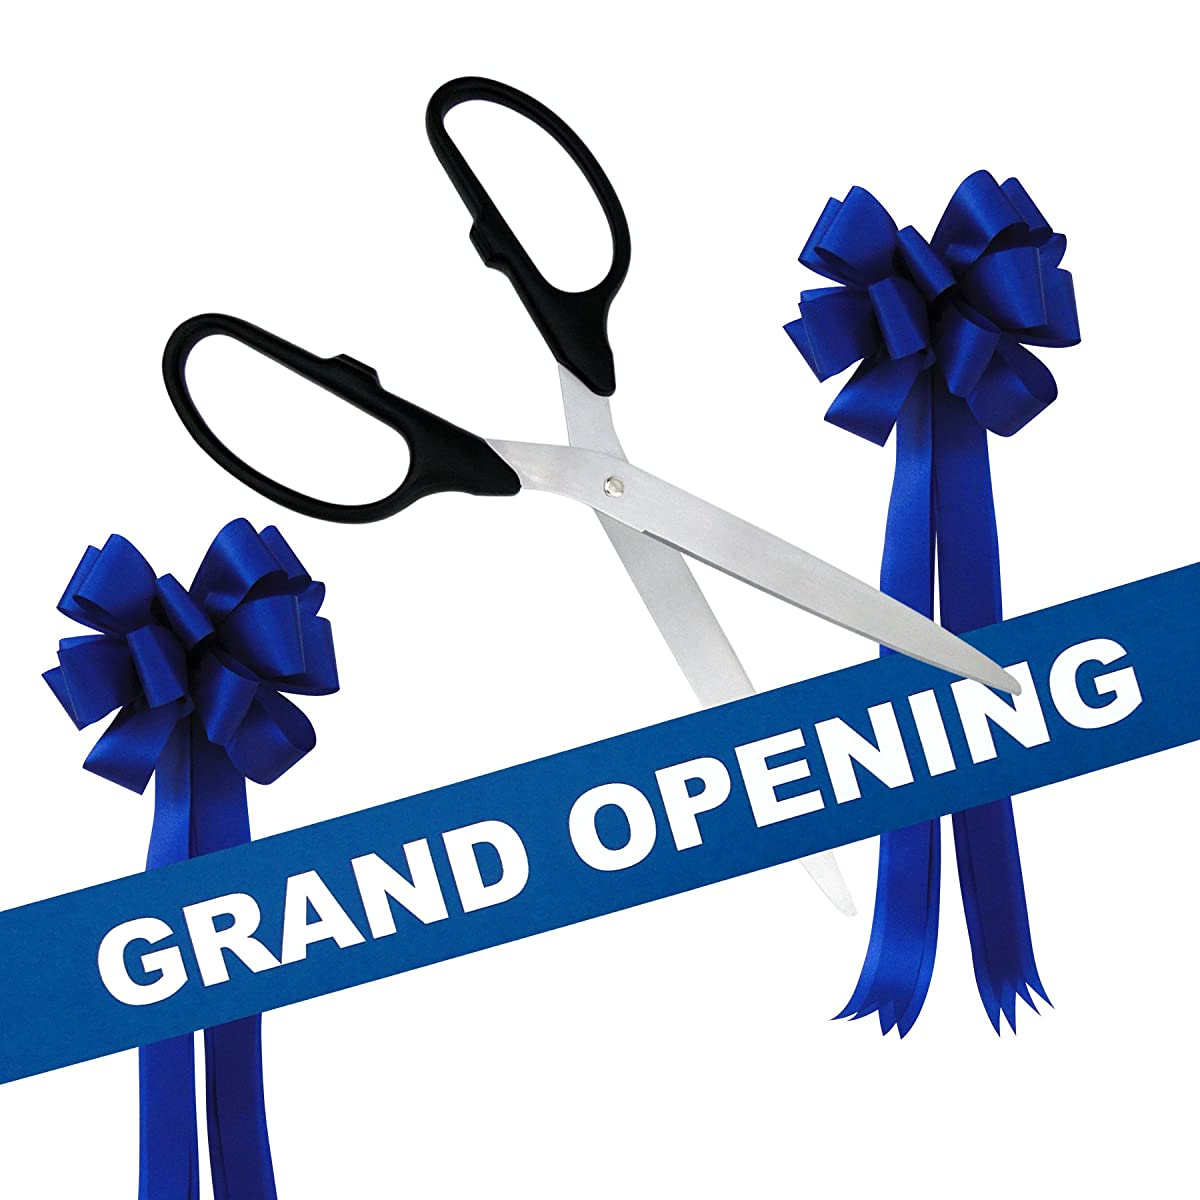 "Grand Opening Kit - 36"" Black/Silver Ceremonial Ribbon Cutting Scissors with 5 Yards of 6"" Royal Blue Grand Opening Ribbon and 2 Royal Blue Bows"